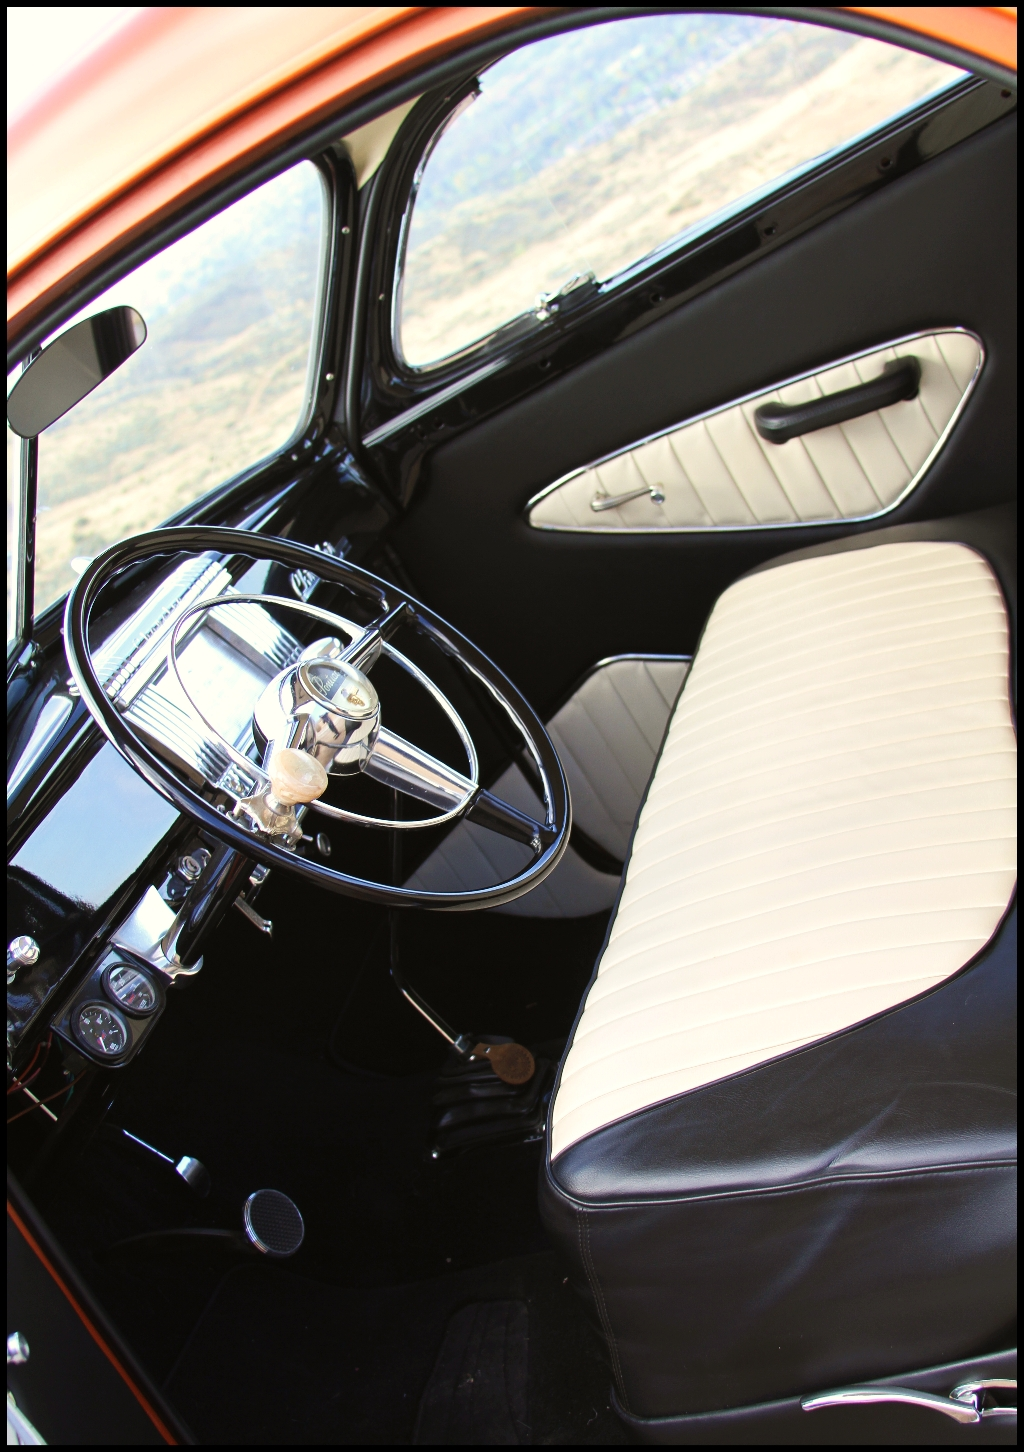 47 Chrysler Royal,traditional tuck and roll interior